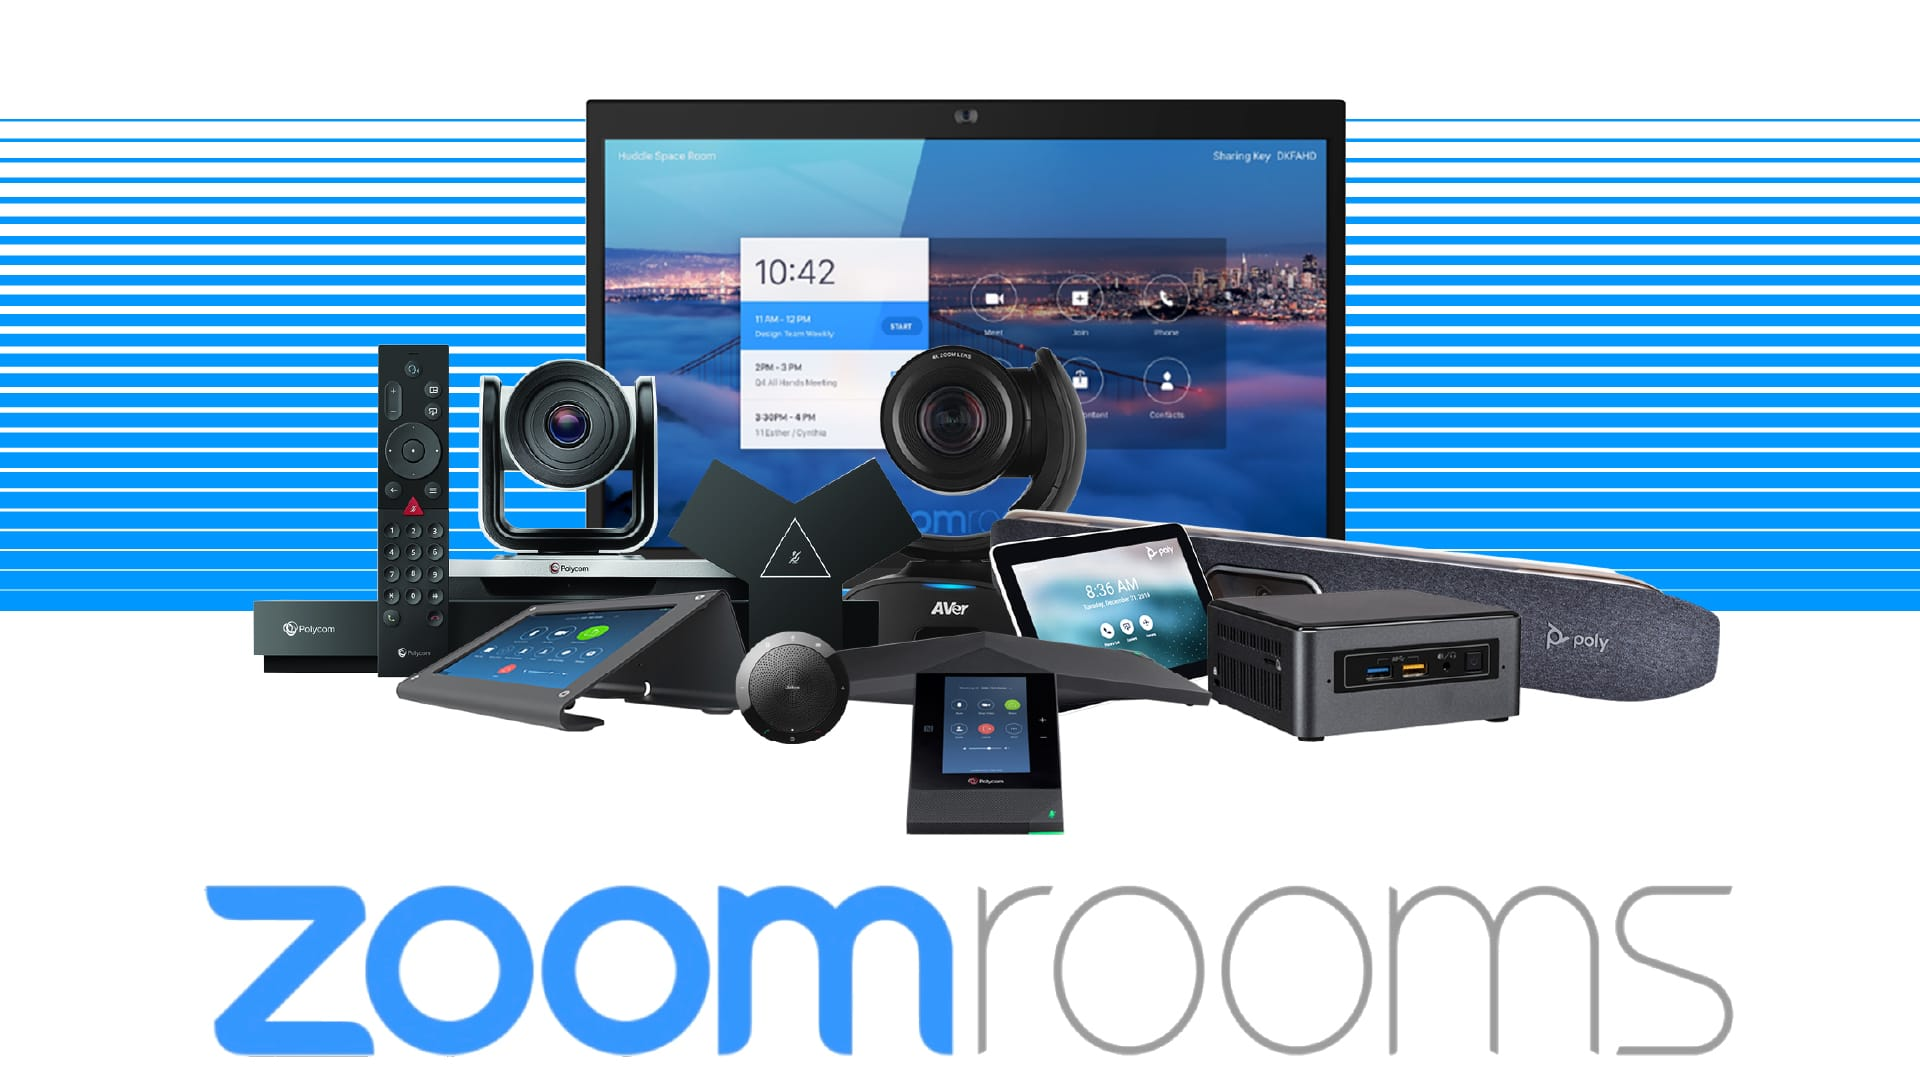 What is a zoom room?